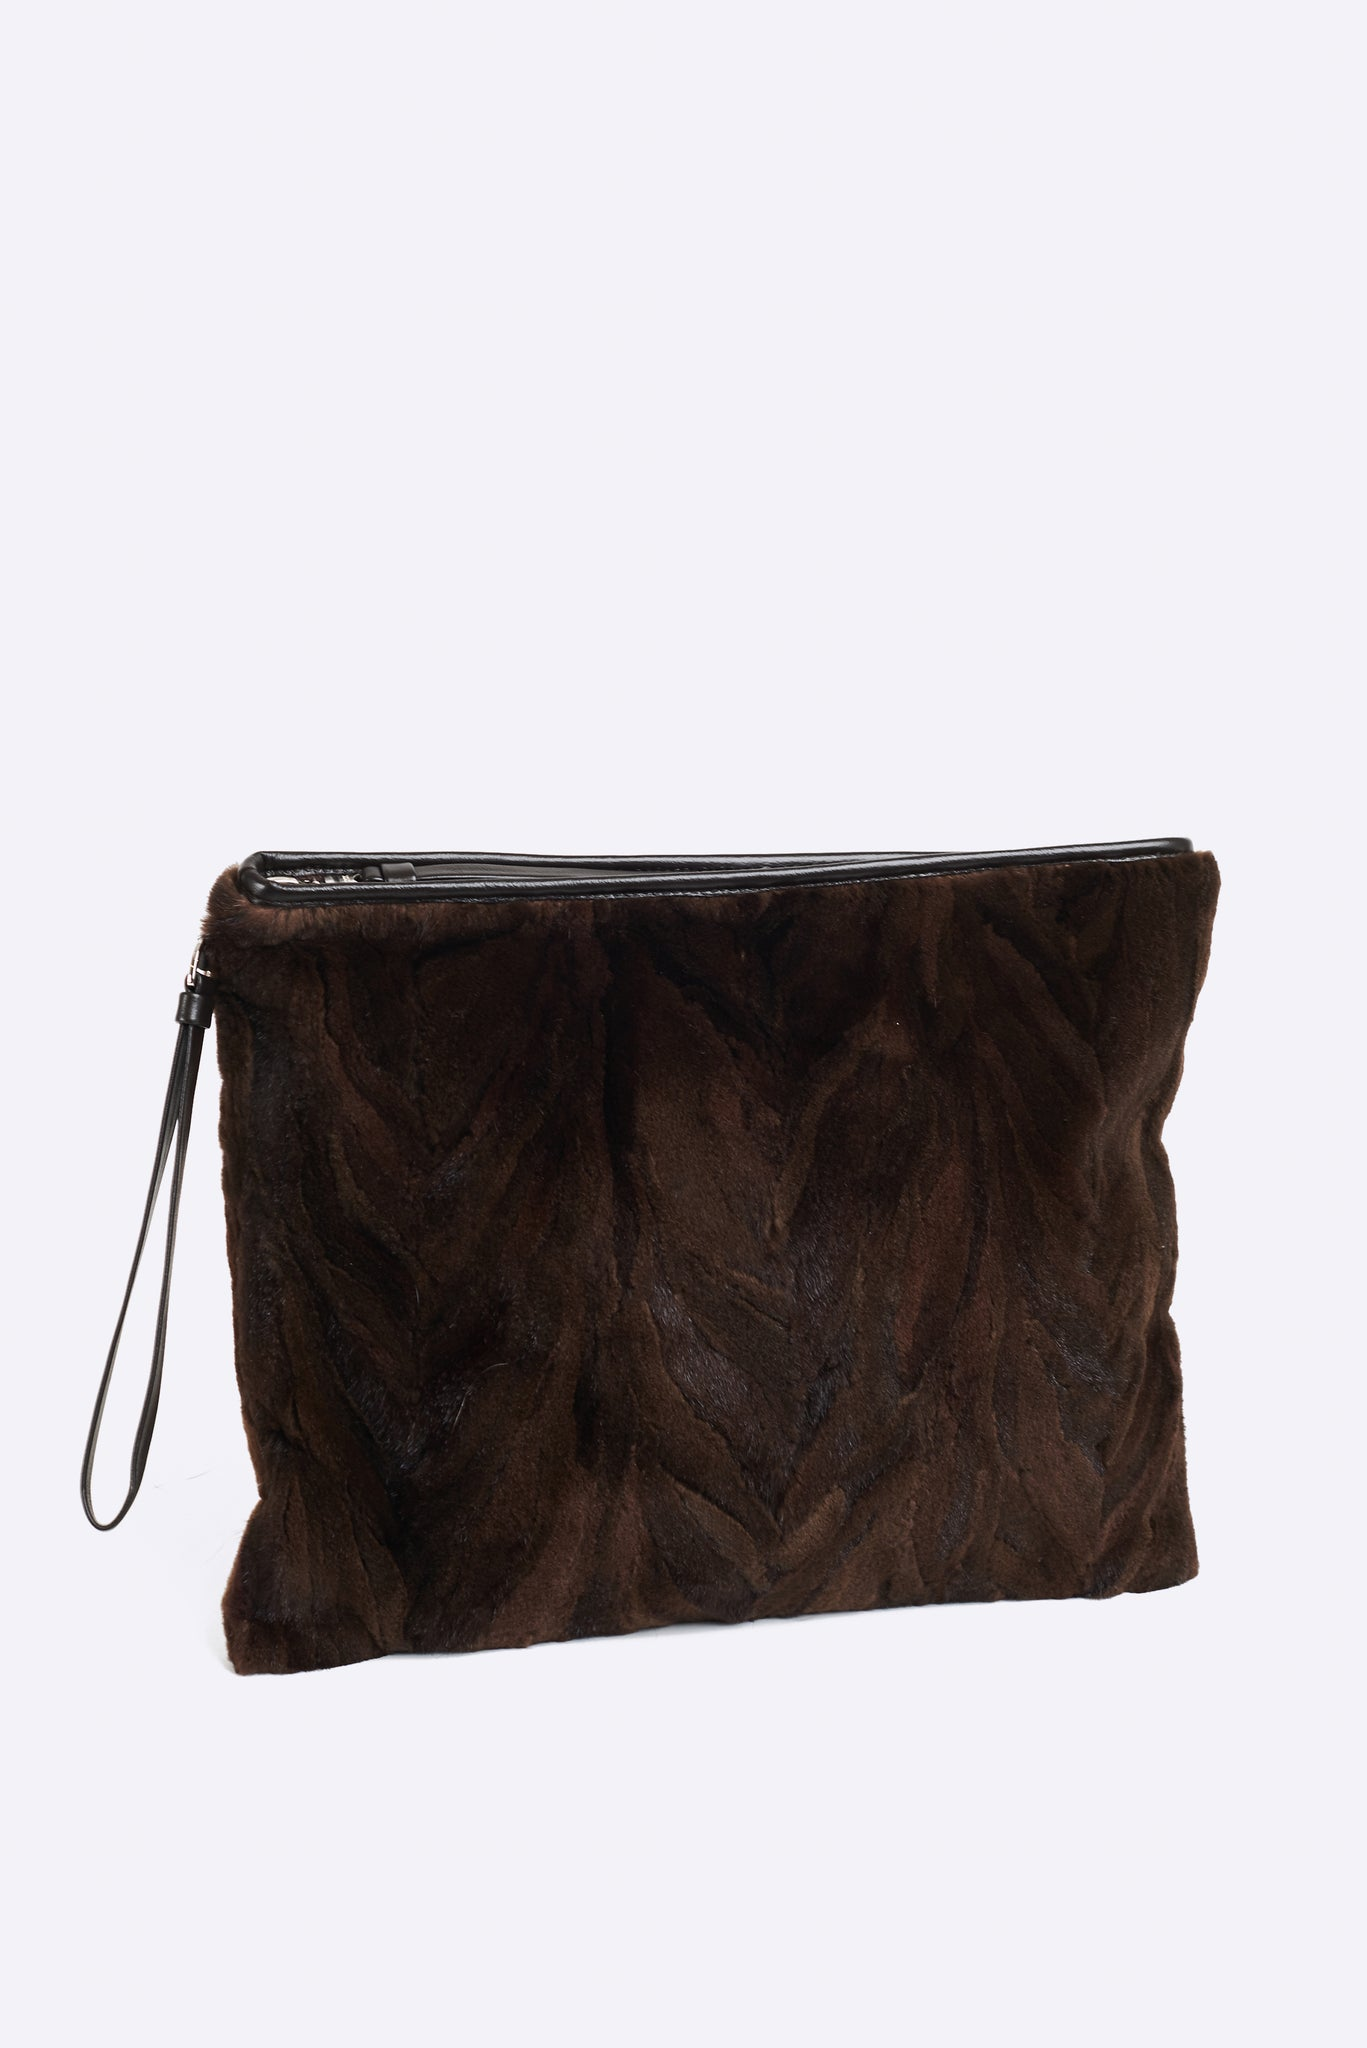 FURB Upcycled - Aberdeen - Upcycled Brown Mink Large Clutch